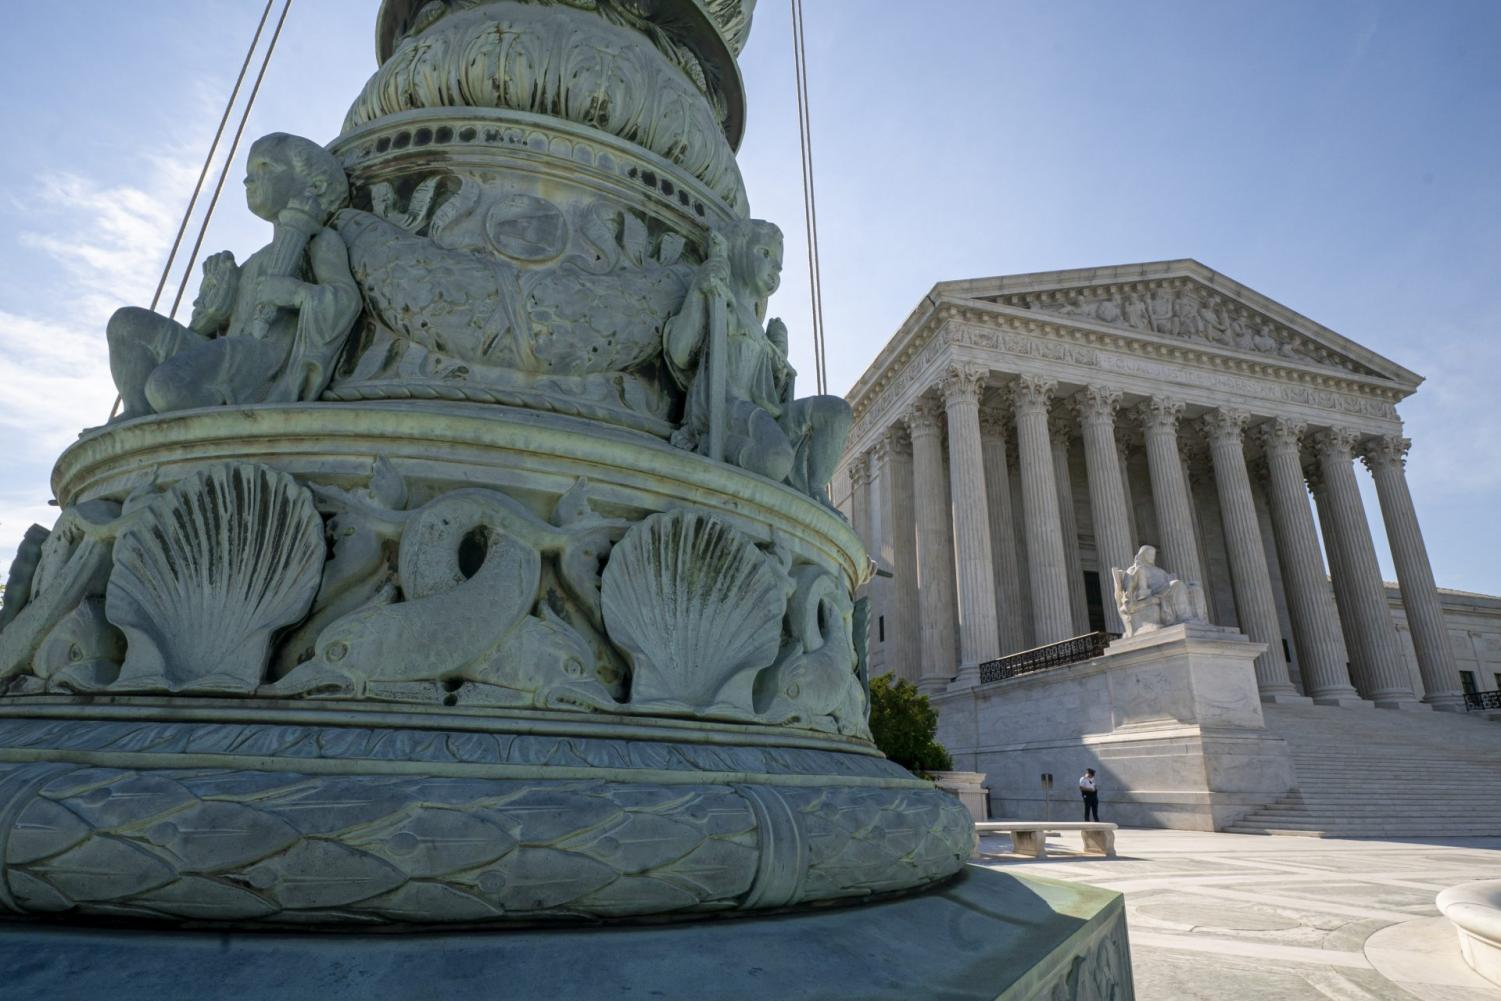 The Supreme Court is seen in Washington. Abortion rights, and protections for young immigrants and LGBT people top an election-year agenda for the Supreme Court. Its conservative majority will have ample opportunity to flex its muscle, testing Chief Justice John Roberts' attempts to keep the court clear of Washington partisan politics.